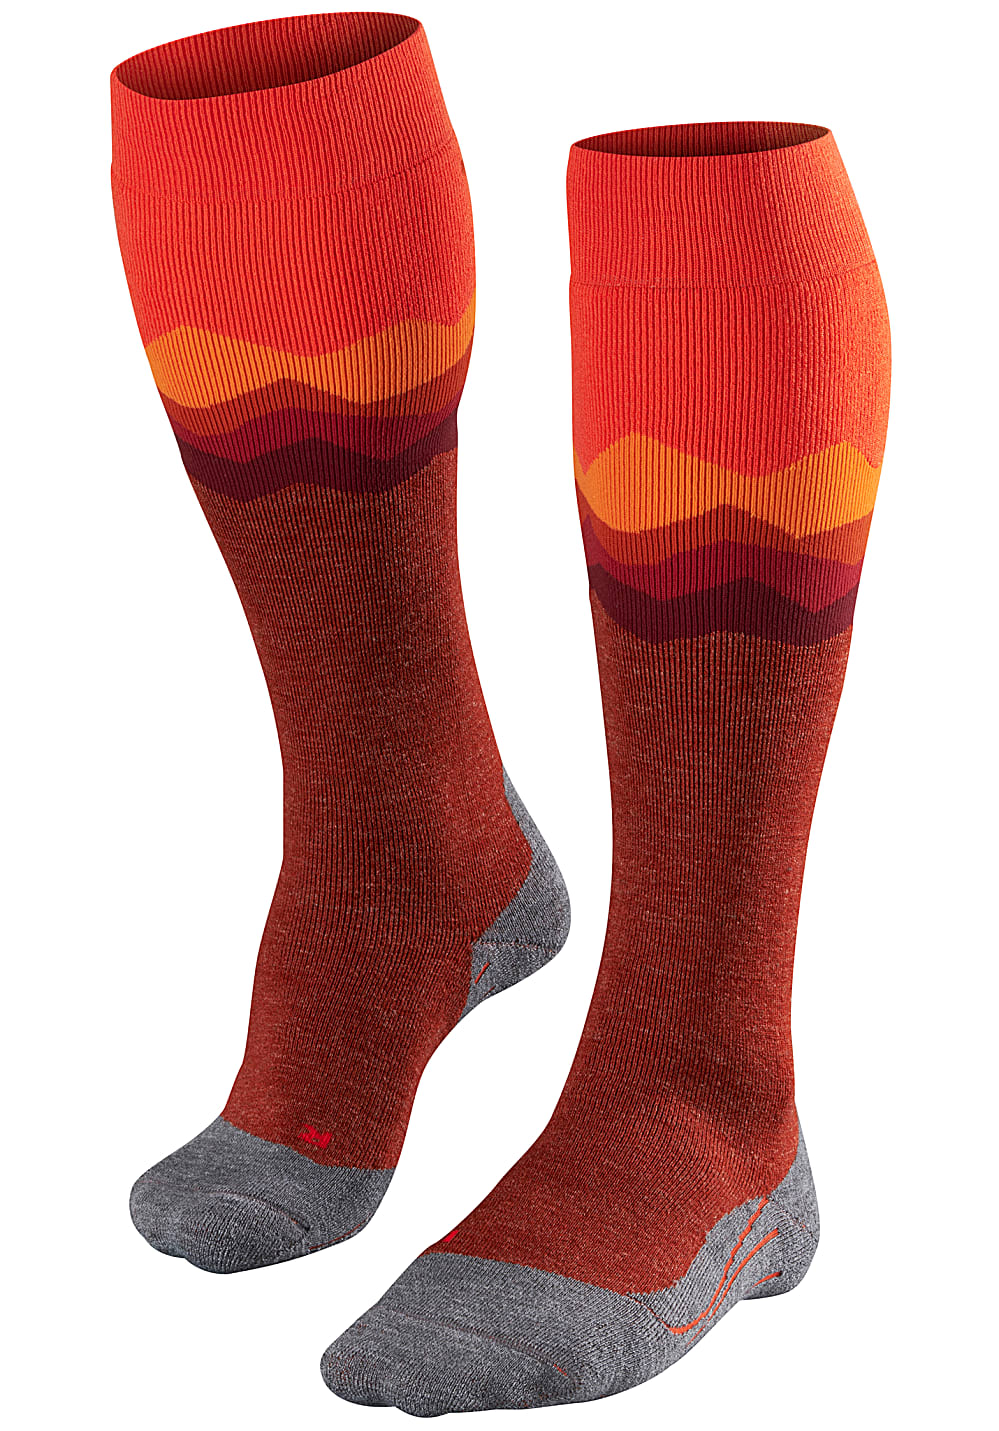 Socken - FALKE SK 2 Crest Snowboard Socken für Damen Orange  - Onlineshop Planet Sports